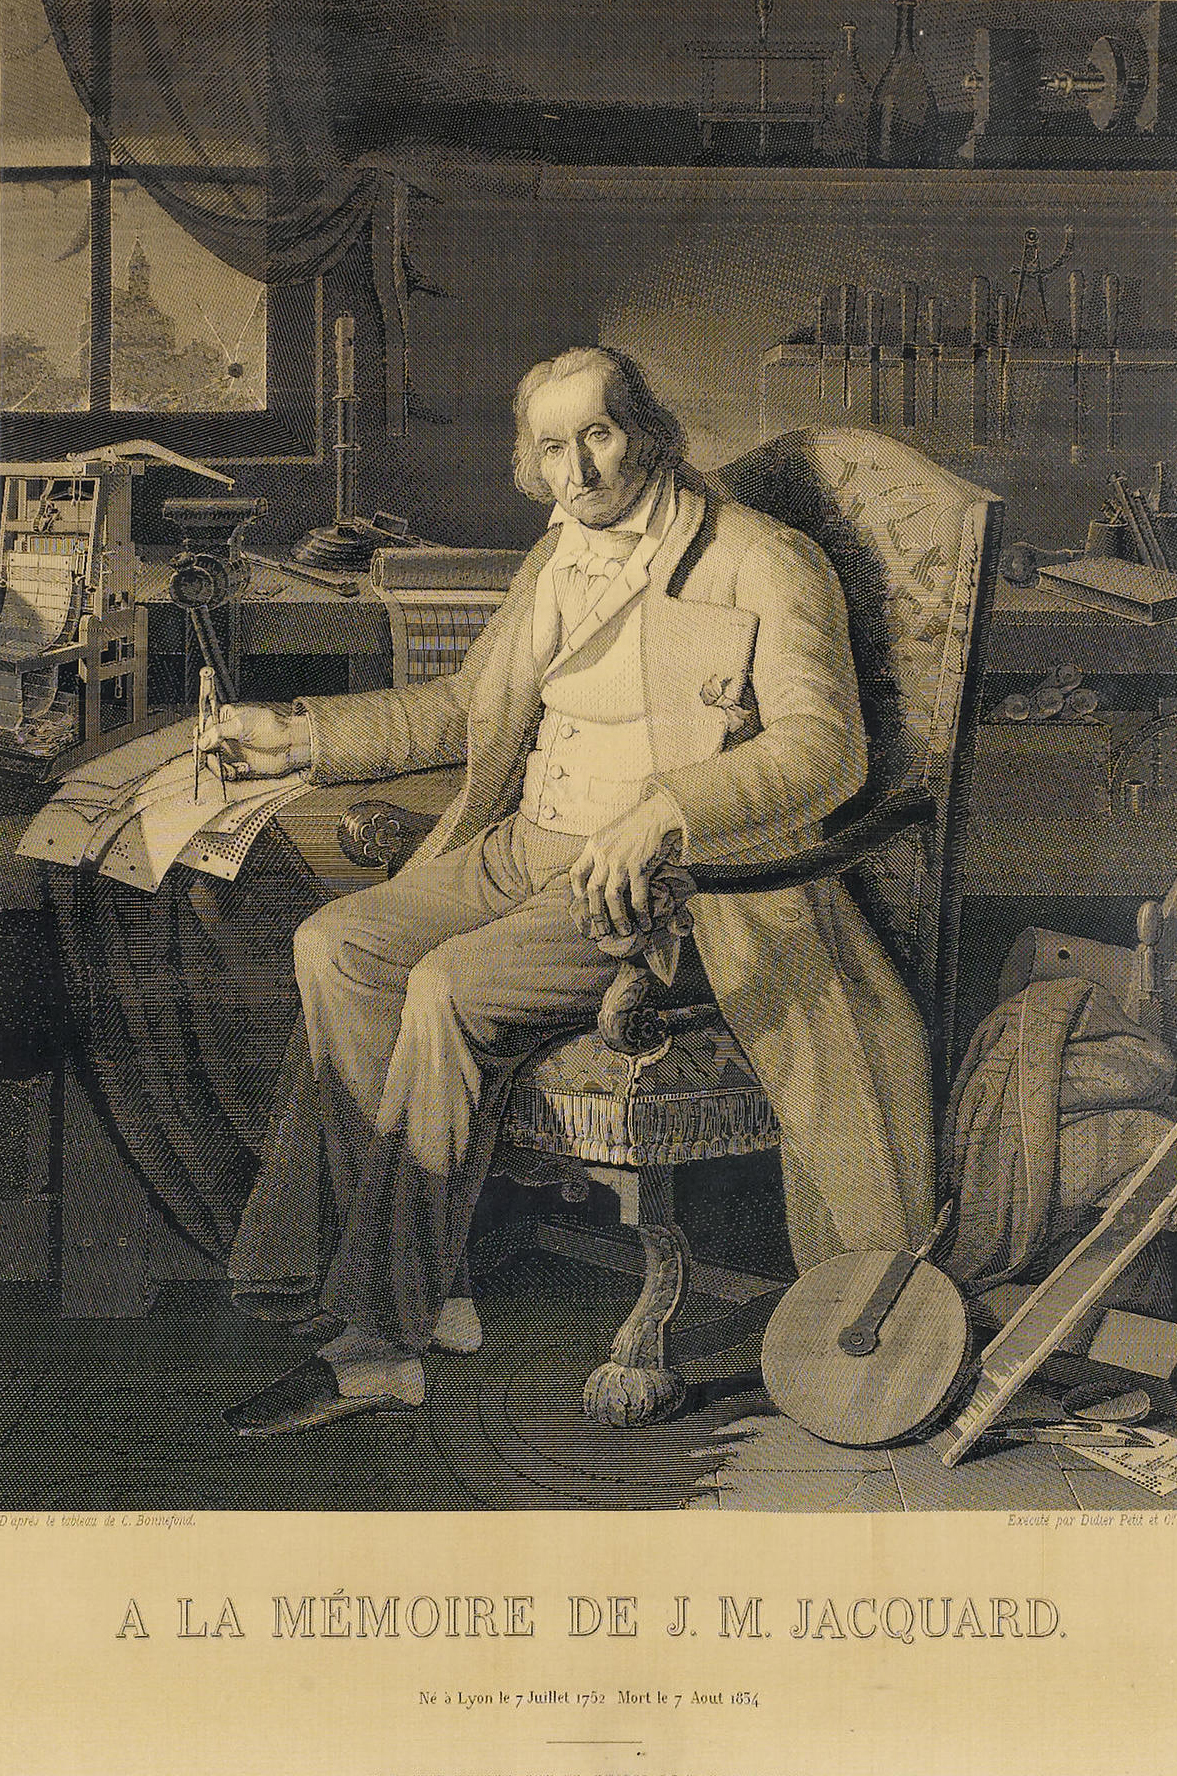 "Portrait of Jacquard woven by the Jacquard loom in 1839. This woven silk portrait of the inventor was based on a painting by Claude Bonnefond (1796–1860)  commissioned by the city of Lyon in 1831. The Lyon manufacturer Didier, Petit et Cie ordered the silk version from weaver Michel-Marie Carquillat, a specialist in this kind of work. Producing the image required 24,000 punched cards. Each card had over 1,000 hole positions. ""The delicate shading, crafted shadows and fine resolution of the Jacquard portrait challenged existing notions that machines were incapable of subtlety. Gradations of shading were surely a matter of artistic taste rather than the province of machinery, and the portrait blurred the clear lines between industrial production and the arts."""